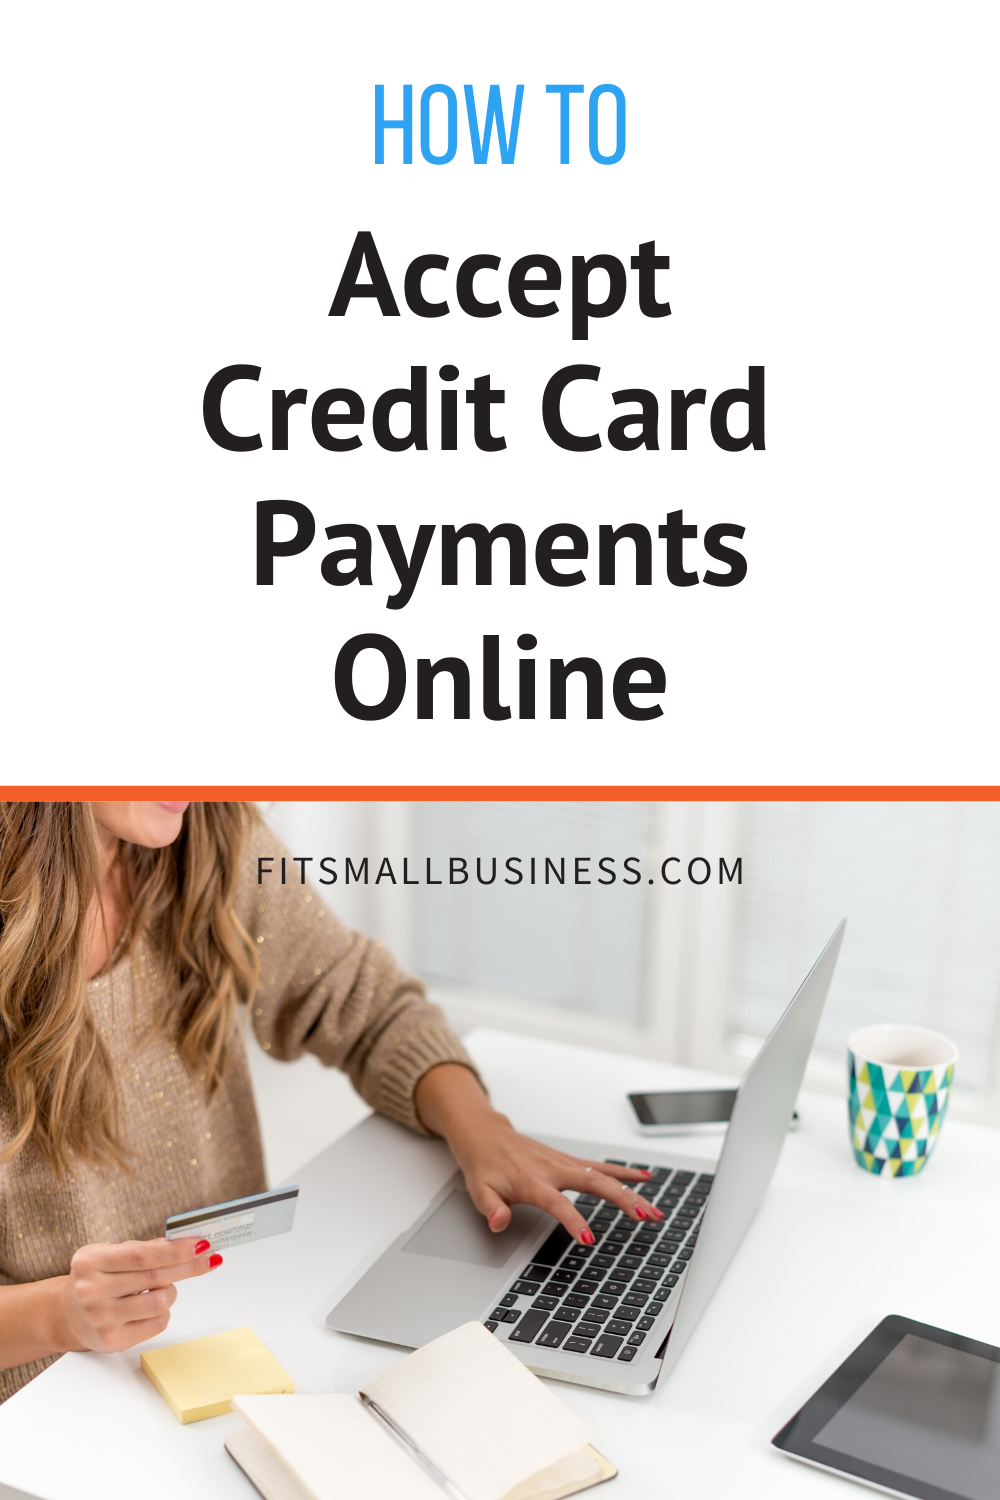 How To Accept Credit Card Payments Online Home Based Business Opportunities Credit Card Payment Money Making Hacks